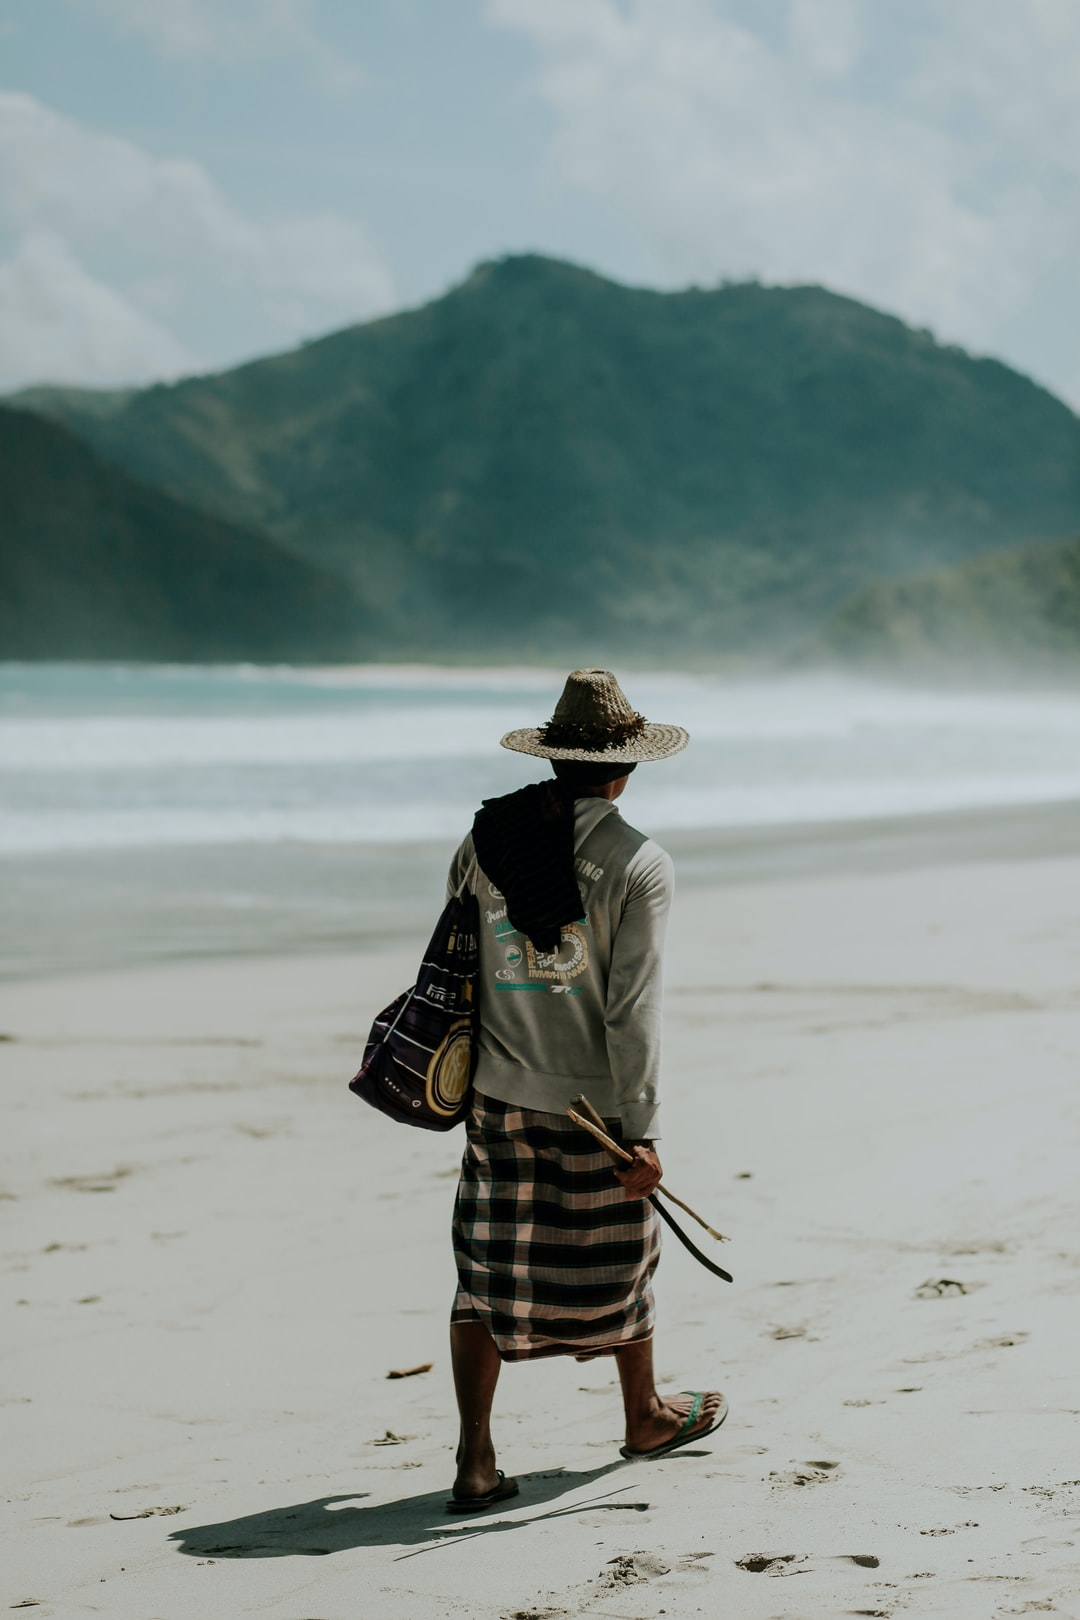 I was travelling to Lombok, Indonesia last two years. I captured this at one of the famous beach for surfing.  This photo makes me feel alone and wanted to move on.